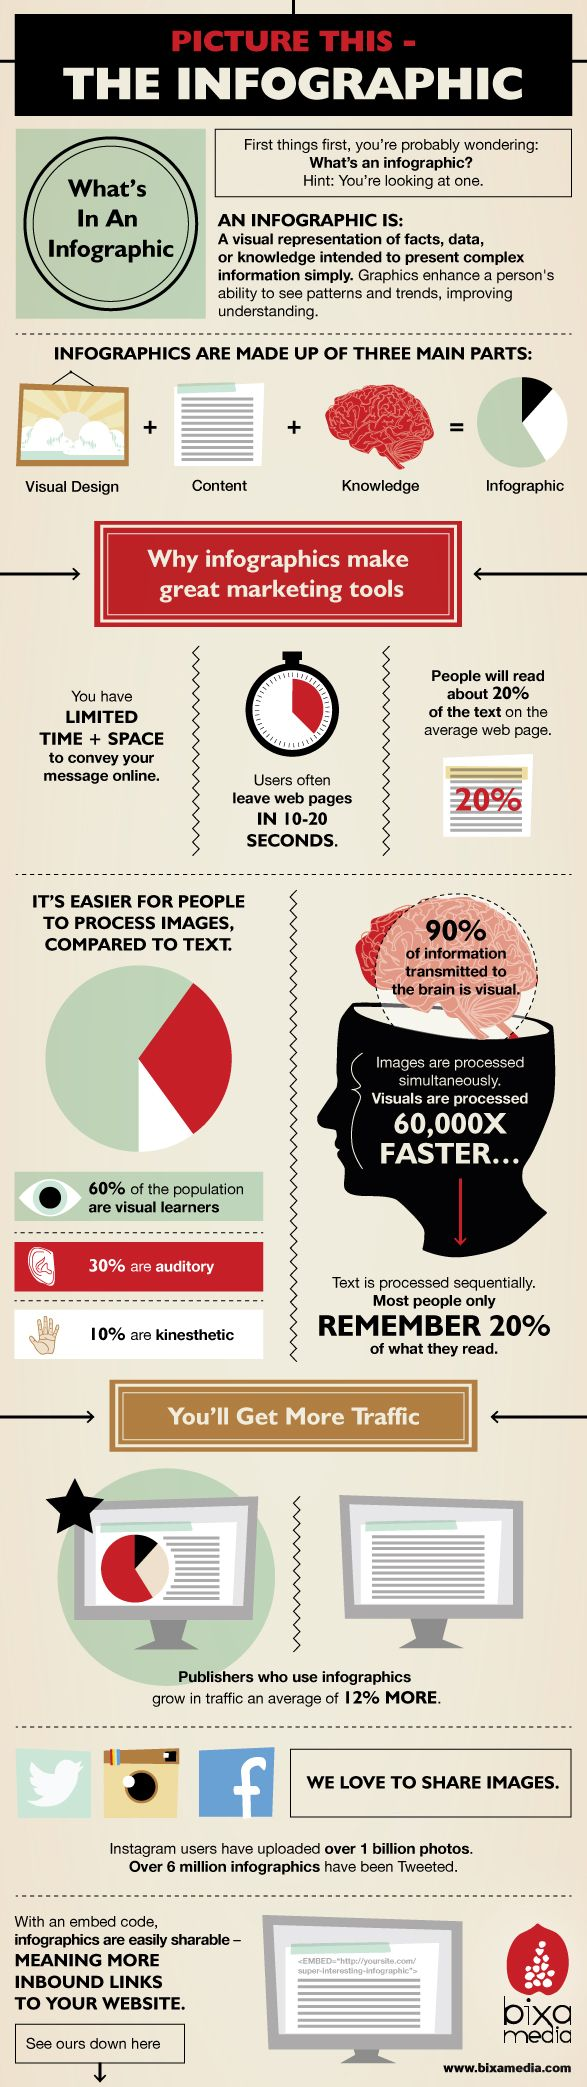 Why Infographics Make Great Marketing Tools #Infographic